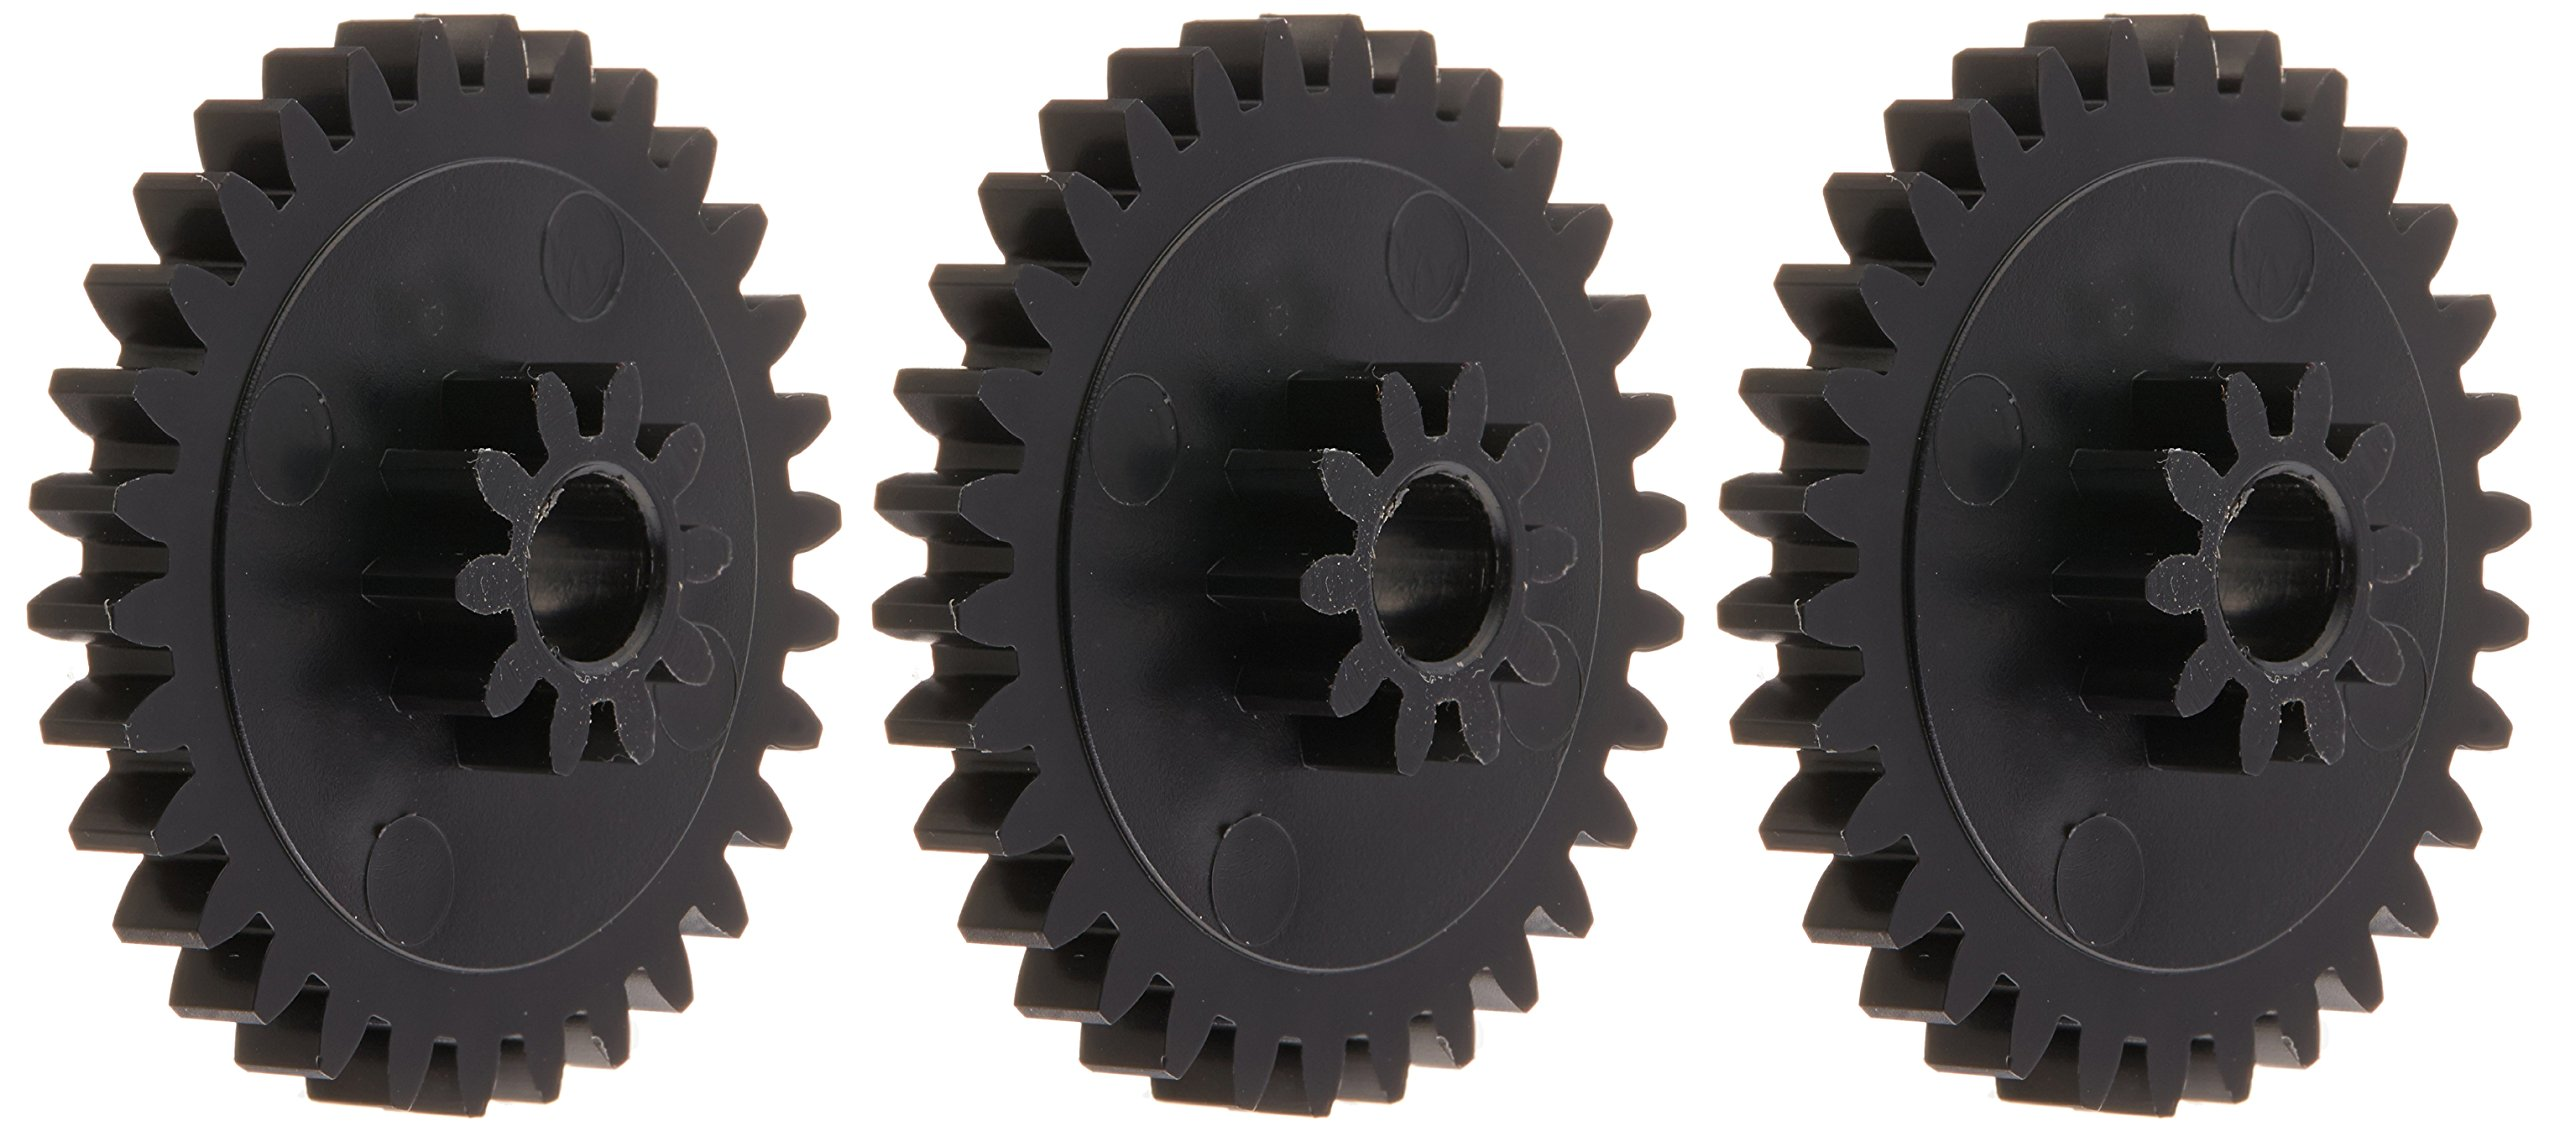 Pentair GW9509 Idler Gear Replacement Kit Kreepy Krauly Great White GW9500 Automatic Pool and Spa Cleaner